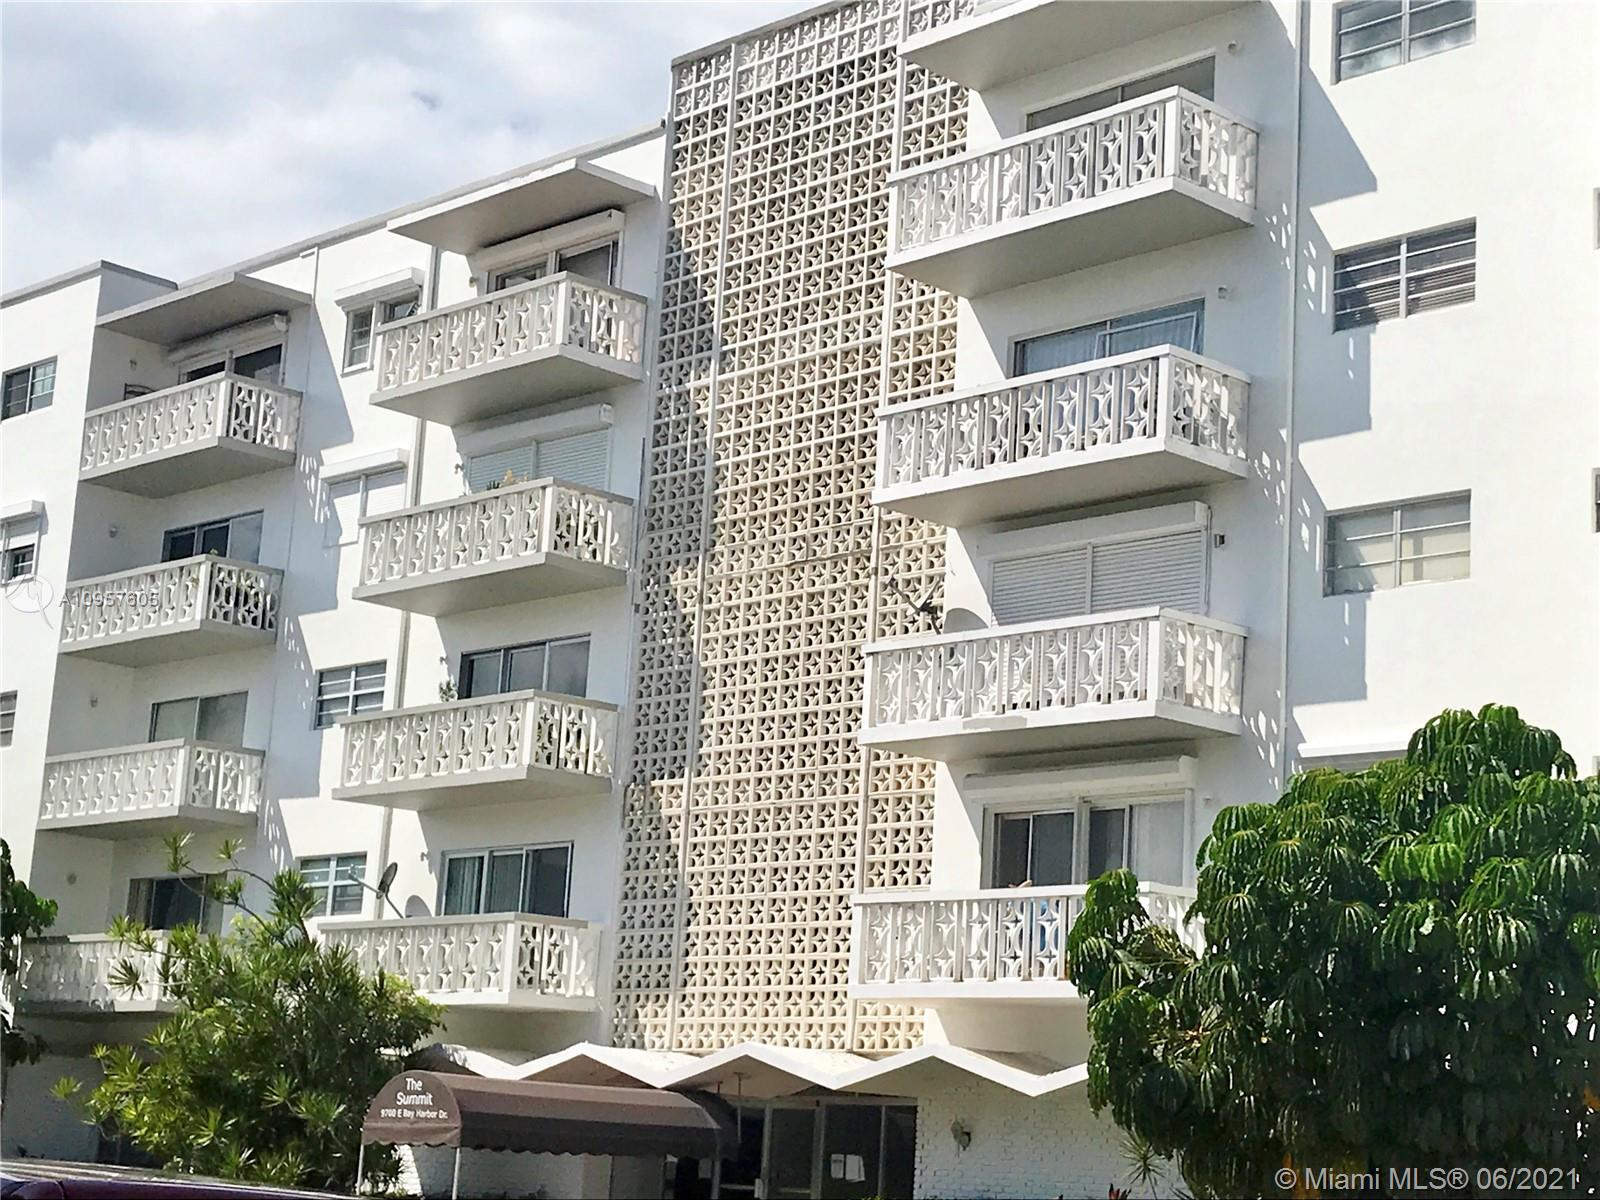 Large, corner, 2 bdrm/2 bath condo in sought-after Bay Harbor Islands.  Sunny SE exposure.  Spacious unit has Terrazzo floors throughout, 2 large balconies, new A/C 2019, ample closets, additional large detached storage, hurricane shutters.  New lobby, roof, & external paint.  Building currently completing remodeling & 40yr certification.  Quiet building in a safe neighborhood, conveniently located across the street from BHI Police, 1 block from Kane Concourse shops & restaurants, steps away from numerous Houses of Worship, Surfside (Publix, CVS, Starbucks, etc.), prestigious Bal Harbour Shops, & the beach is a short 9 minute walk!  If you have children they will qualify to enroll at A-graded Ruth K Broad school, ranked one of the best K-8 schools in M-D.  GREAT BUY, priced to sell as is!